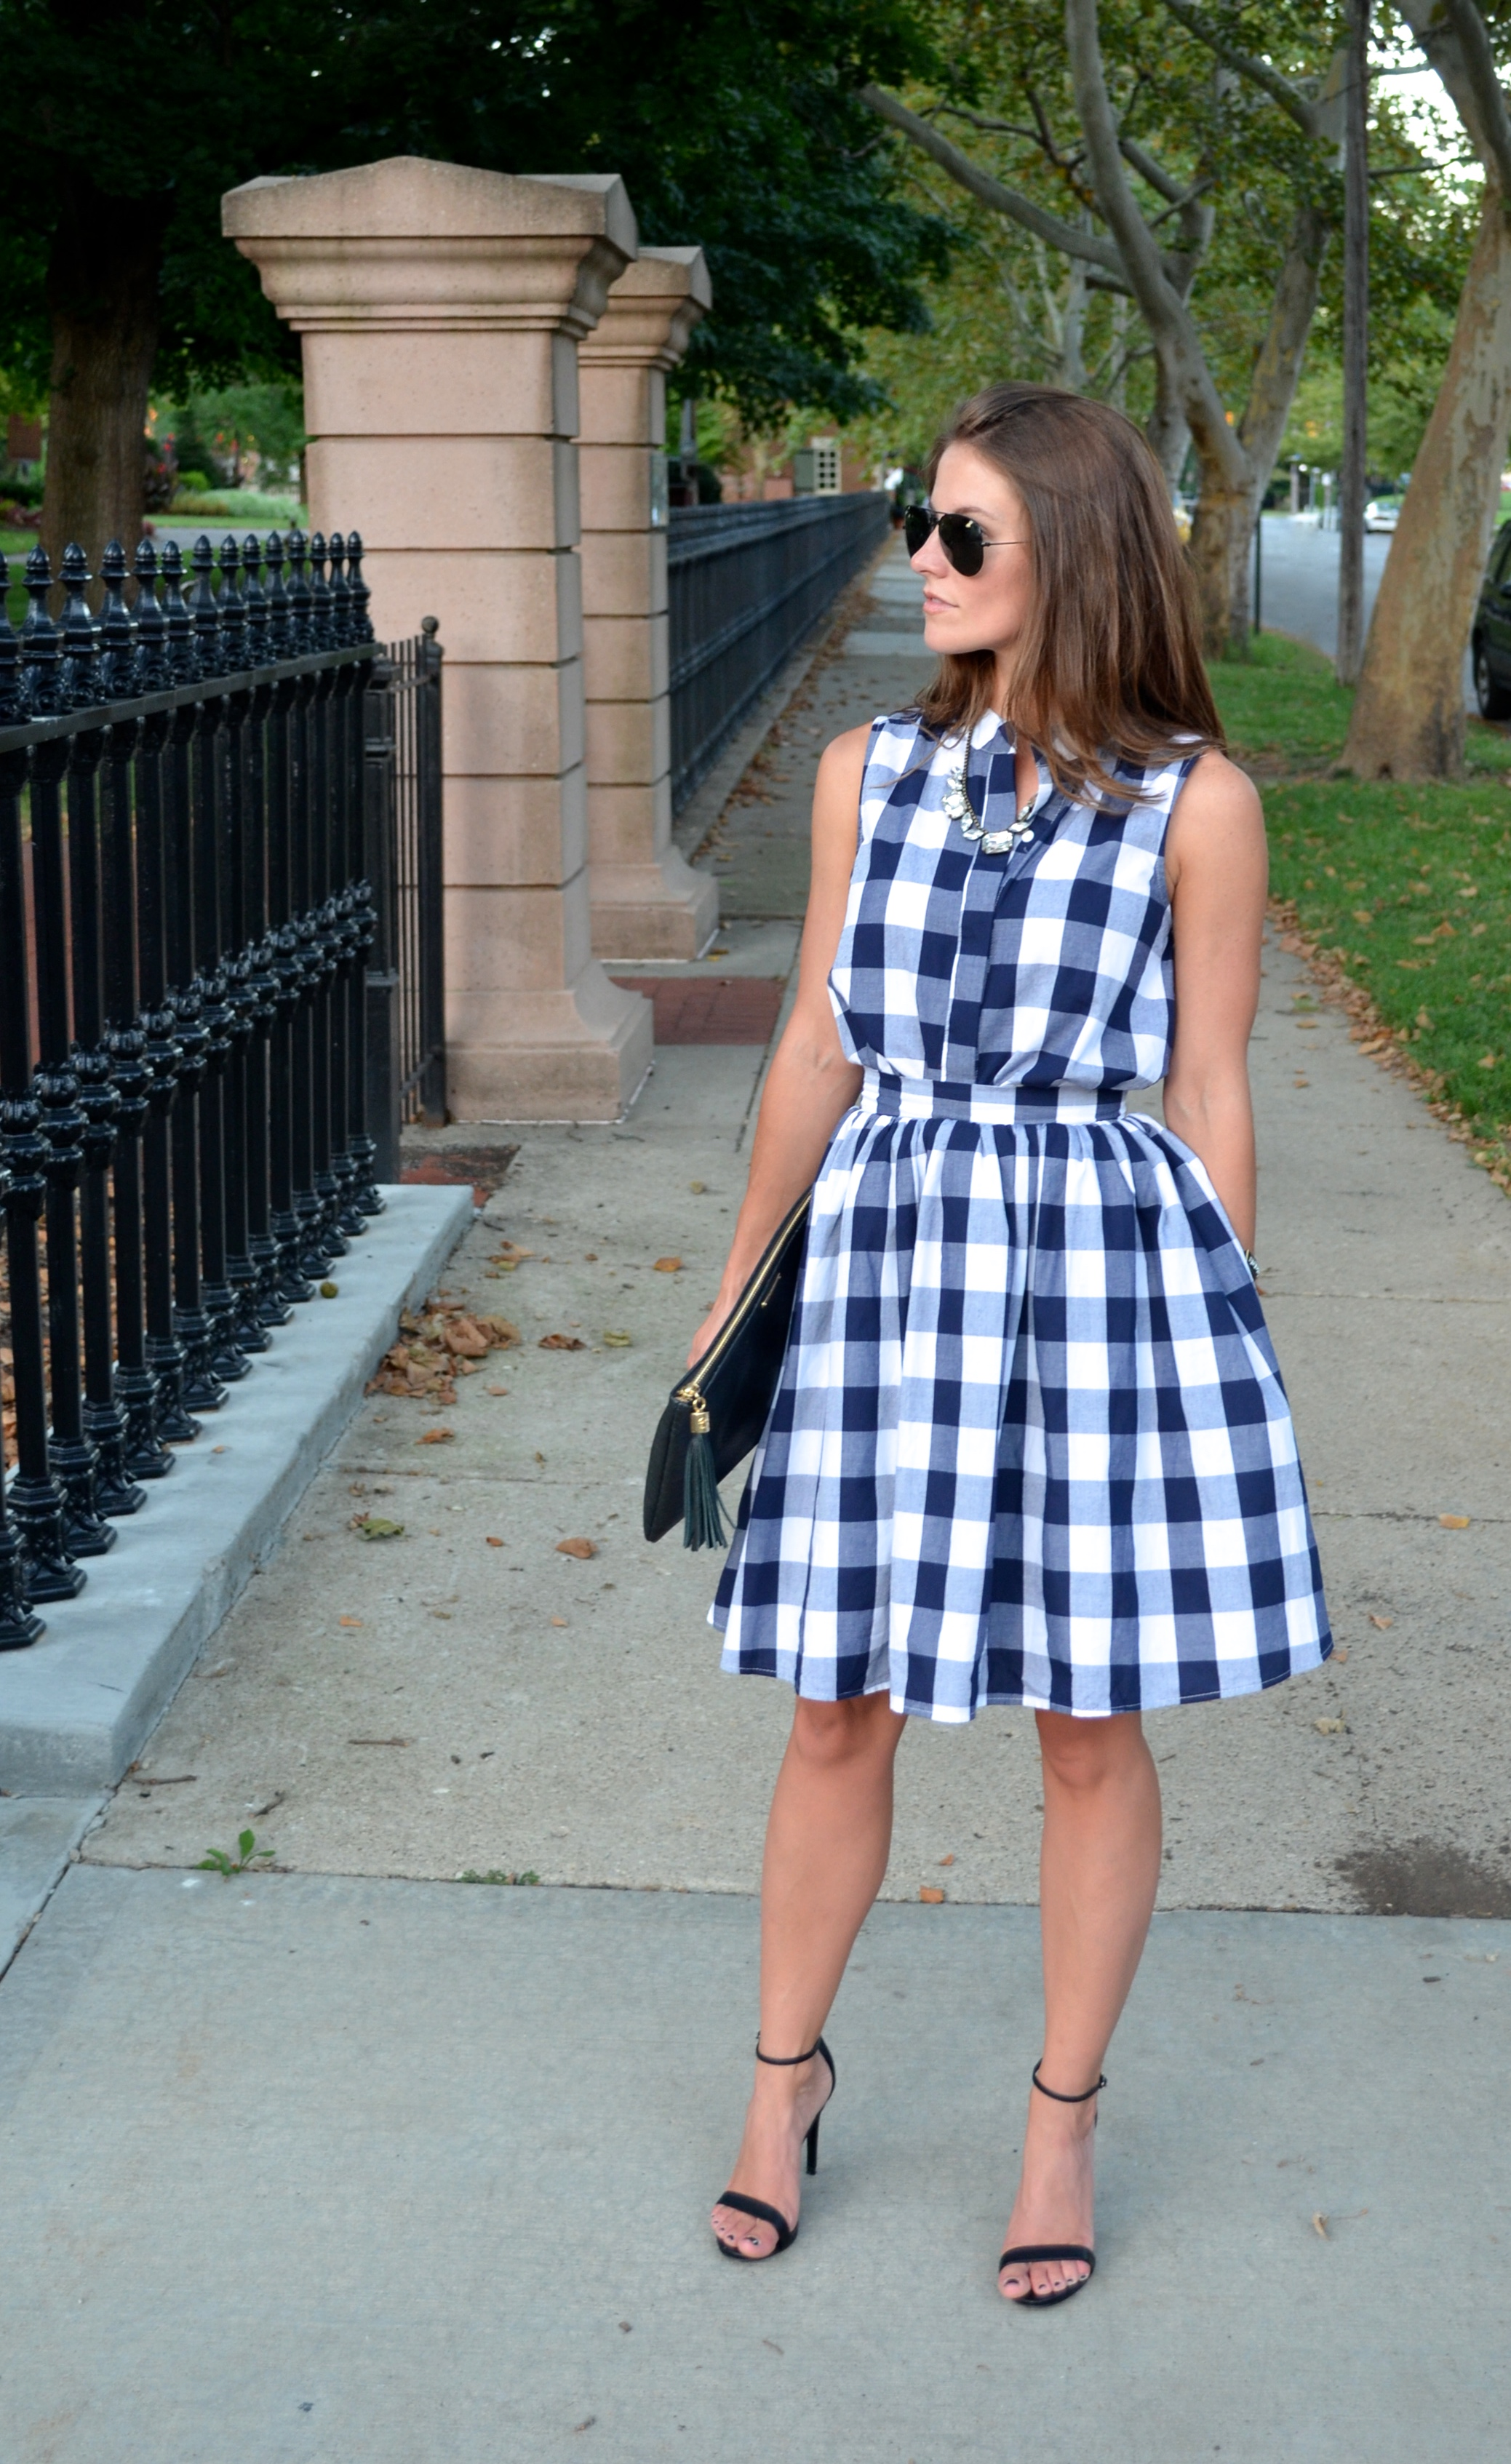 gingham dress outfit inspiration